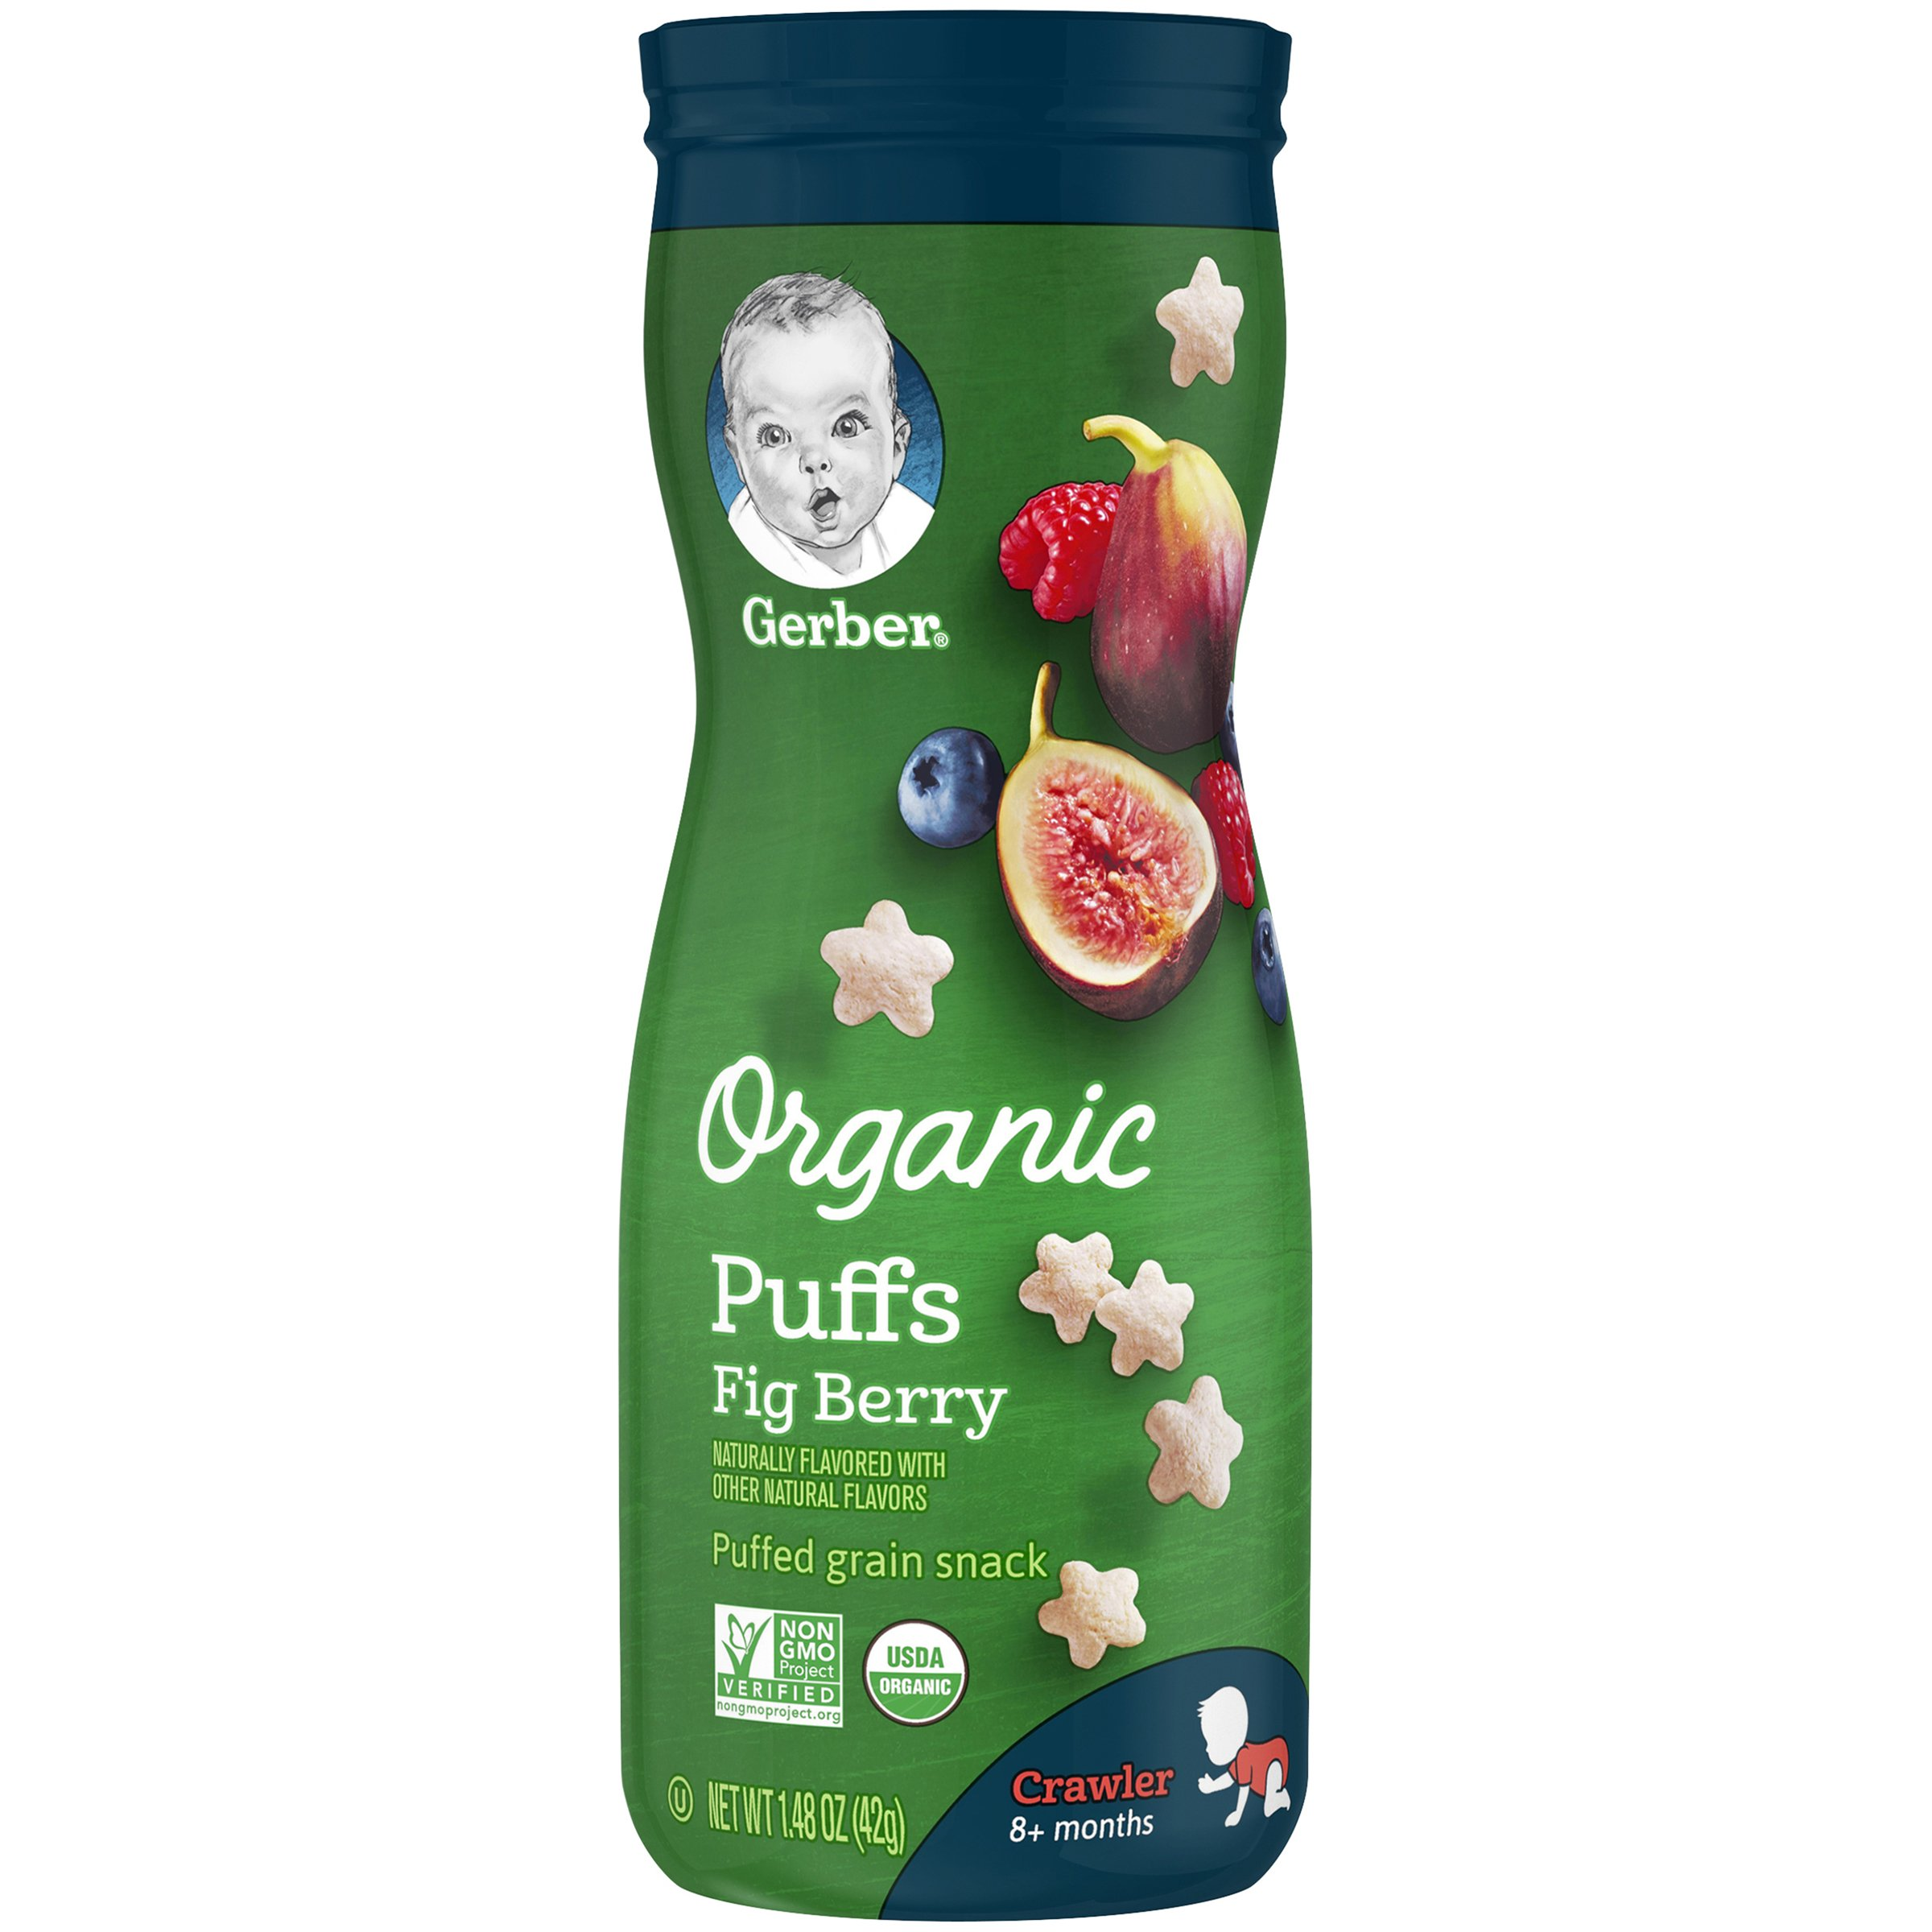 Gerber Organic Puffs Cereal Snack, Fig Berry, 6 Count by Gerber